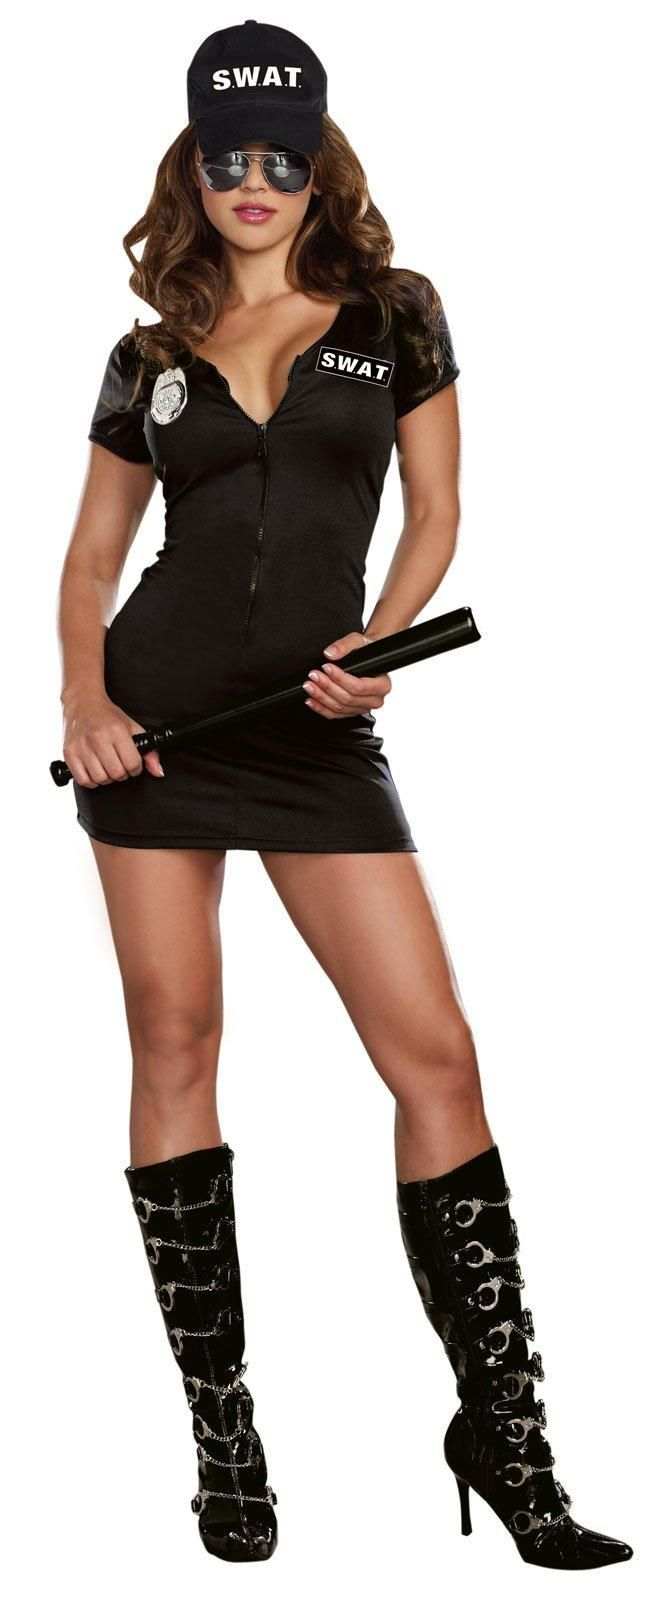 Womens S.W.A.T. Police Costume from Buycostumes.com